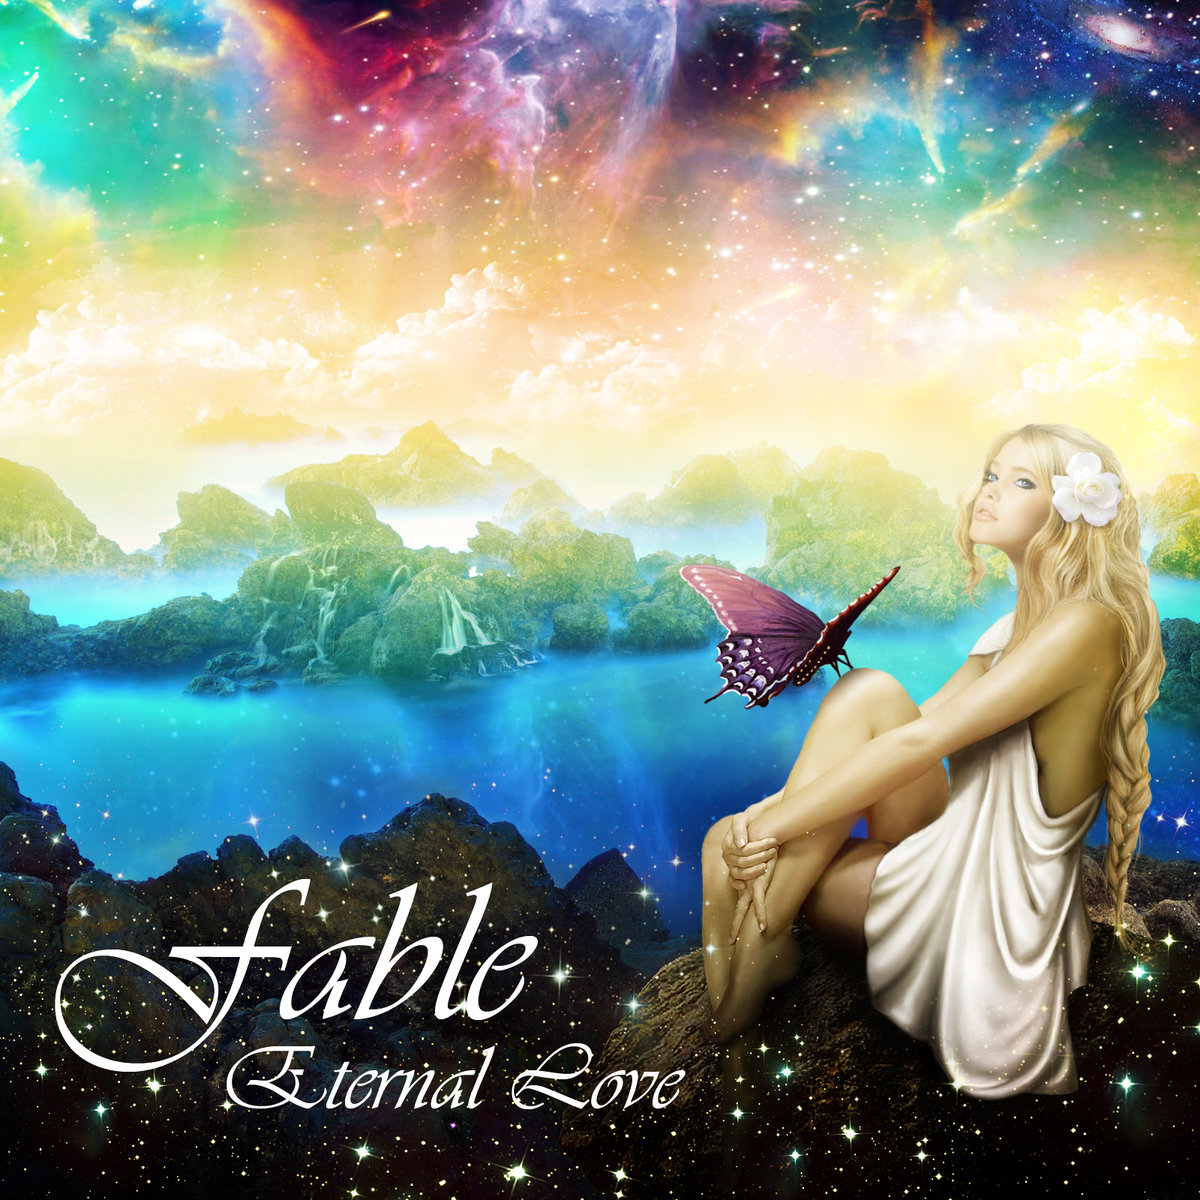 Eternal Love - Fable (Reprise) @ 'Fable' album (ambient, chill)